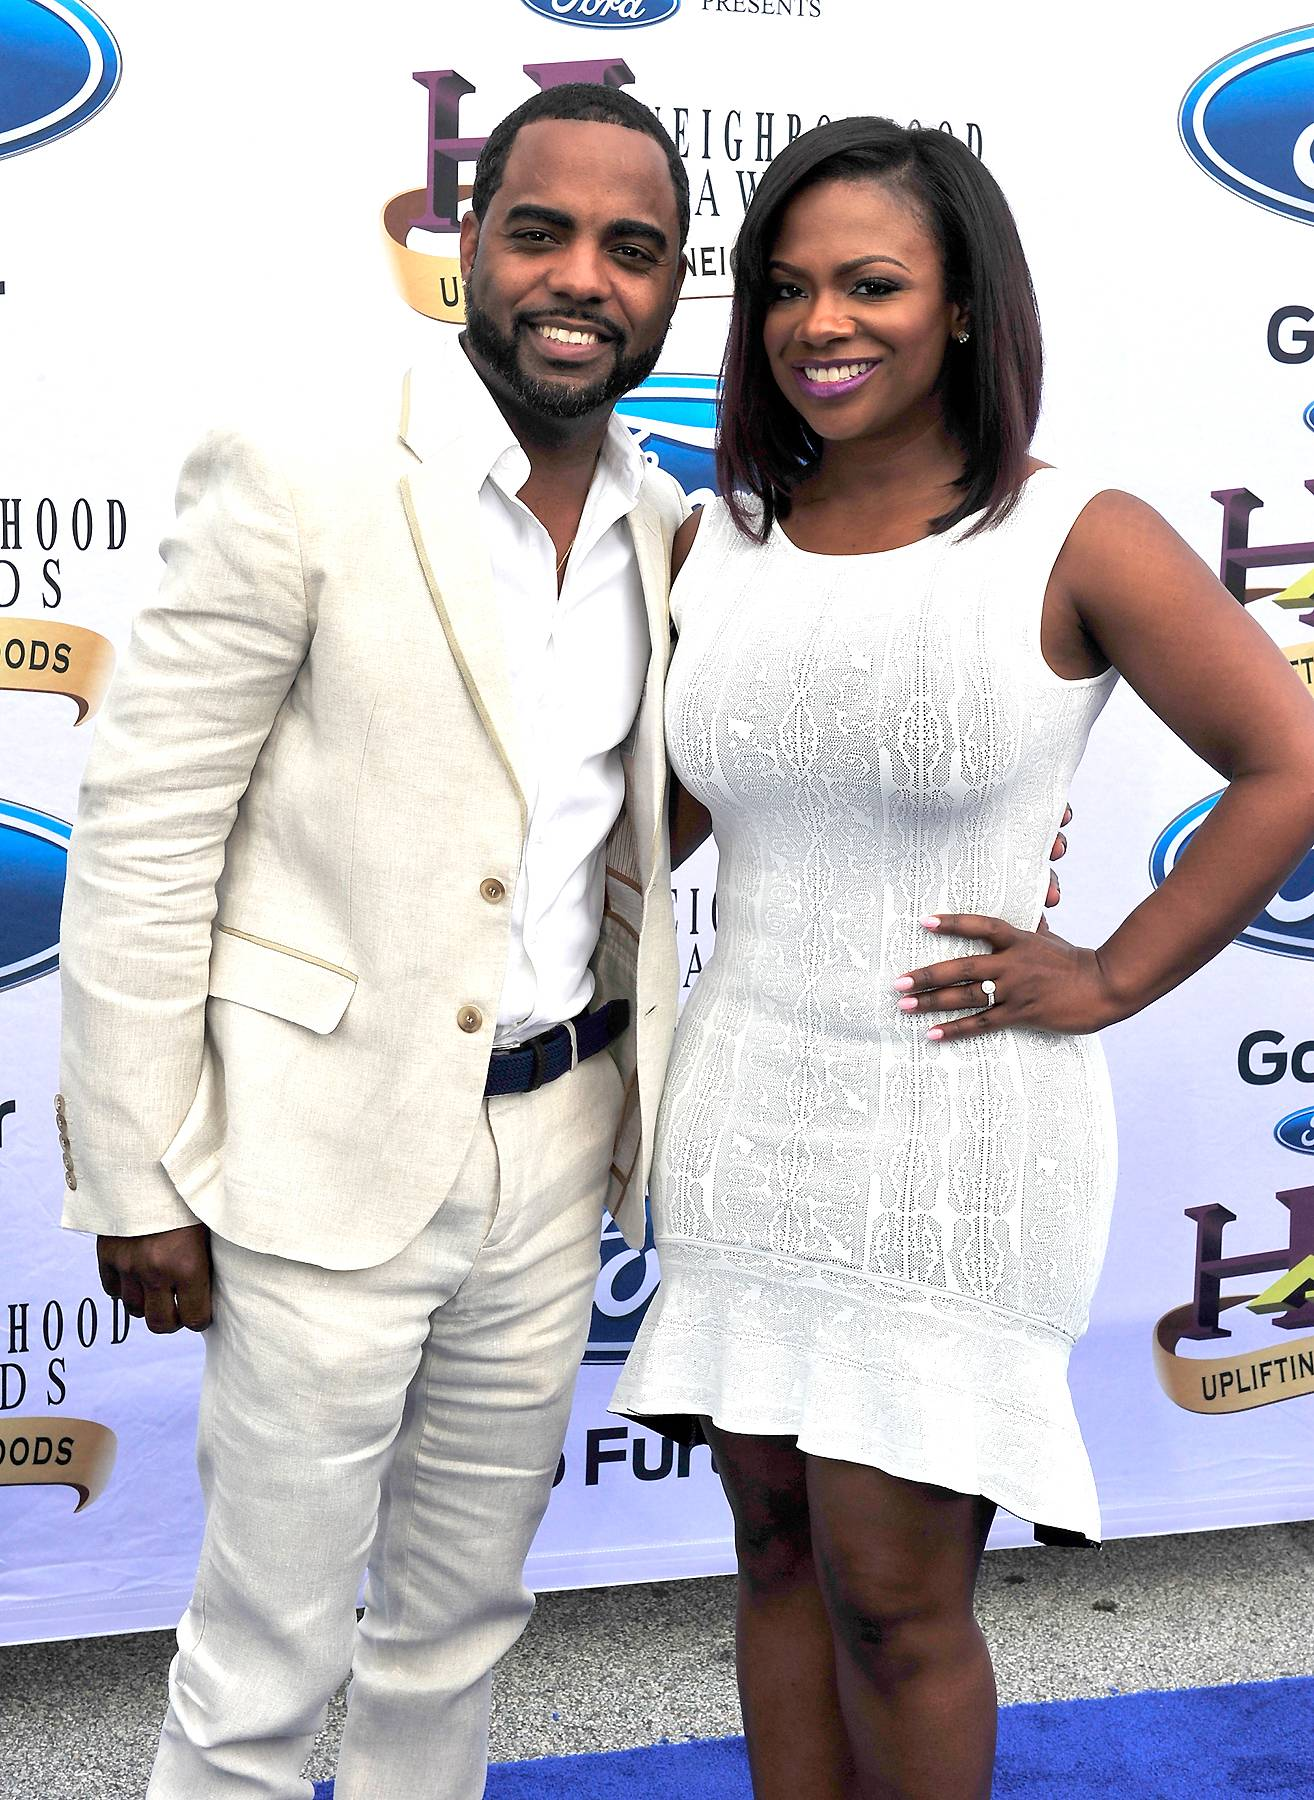 Kandi and Todd Plus New Baby?  - Rumors started circulating that Kandi Burruss and Todd Tucker are expecting a baby after Todd posted a photo of himself browsing baby sneakers. However, Todd's mother stepped up to let us know that when Kandi gets pregnant, she'll let us know.?I think they want to get pregnant. I would love that,? Miss Sharon told Radar online. ?And I?m pretty sure if she does get pregnant, she?ll announce it on the show.?In the meantime, we know that Todd and Kandi will have lots of fun trying.